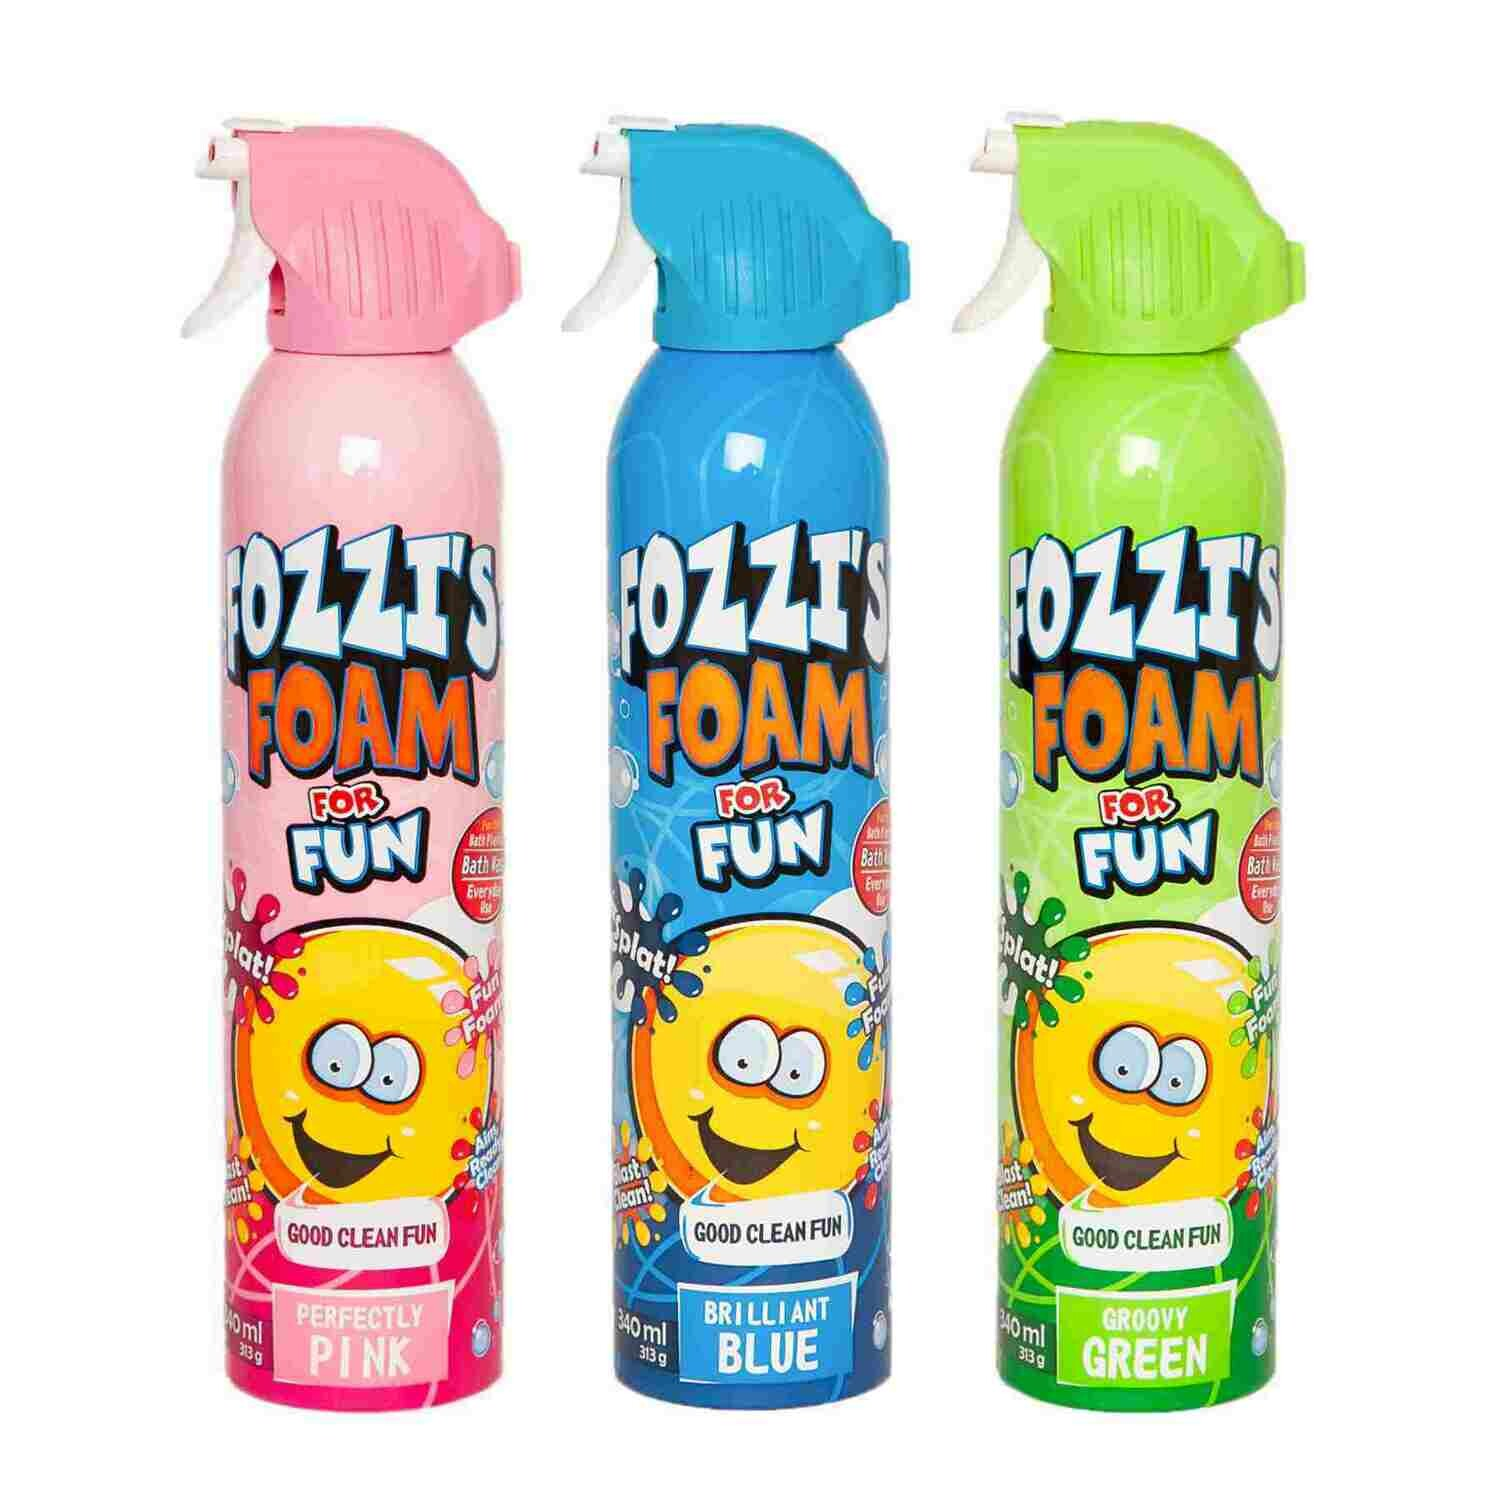 FOZZI's Bath Foam Aerosol for Kids, Brilliant Blue, Groovy Green and Perfectly Pink, Good Fozzi Fun, 11.04 ounces (313g) Each (Pack of 3) and Free Shipping